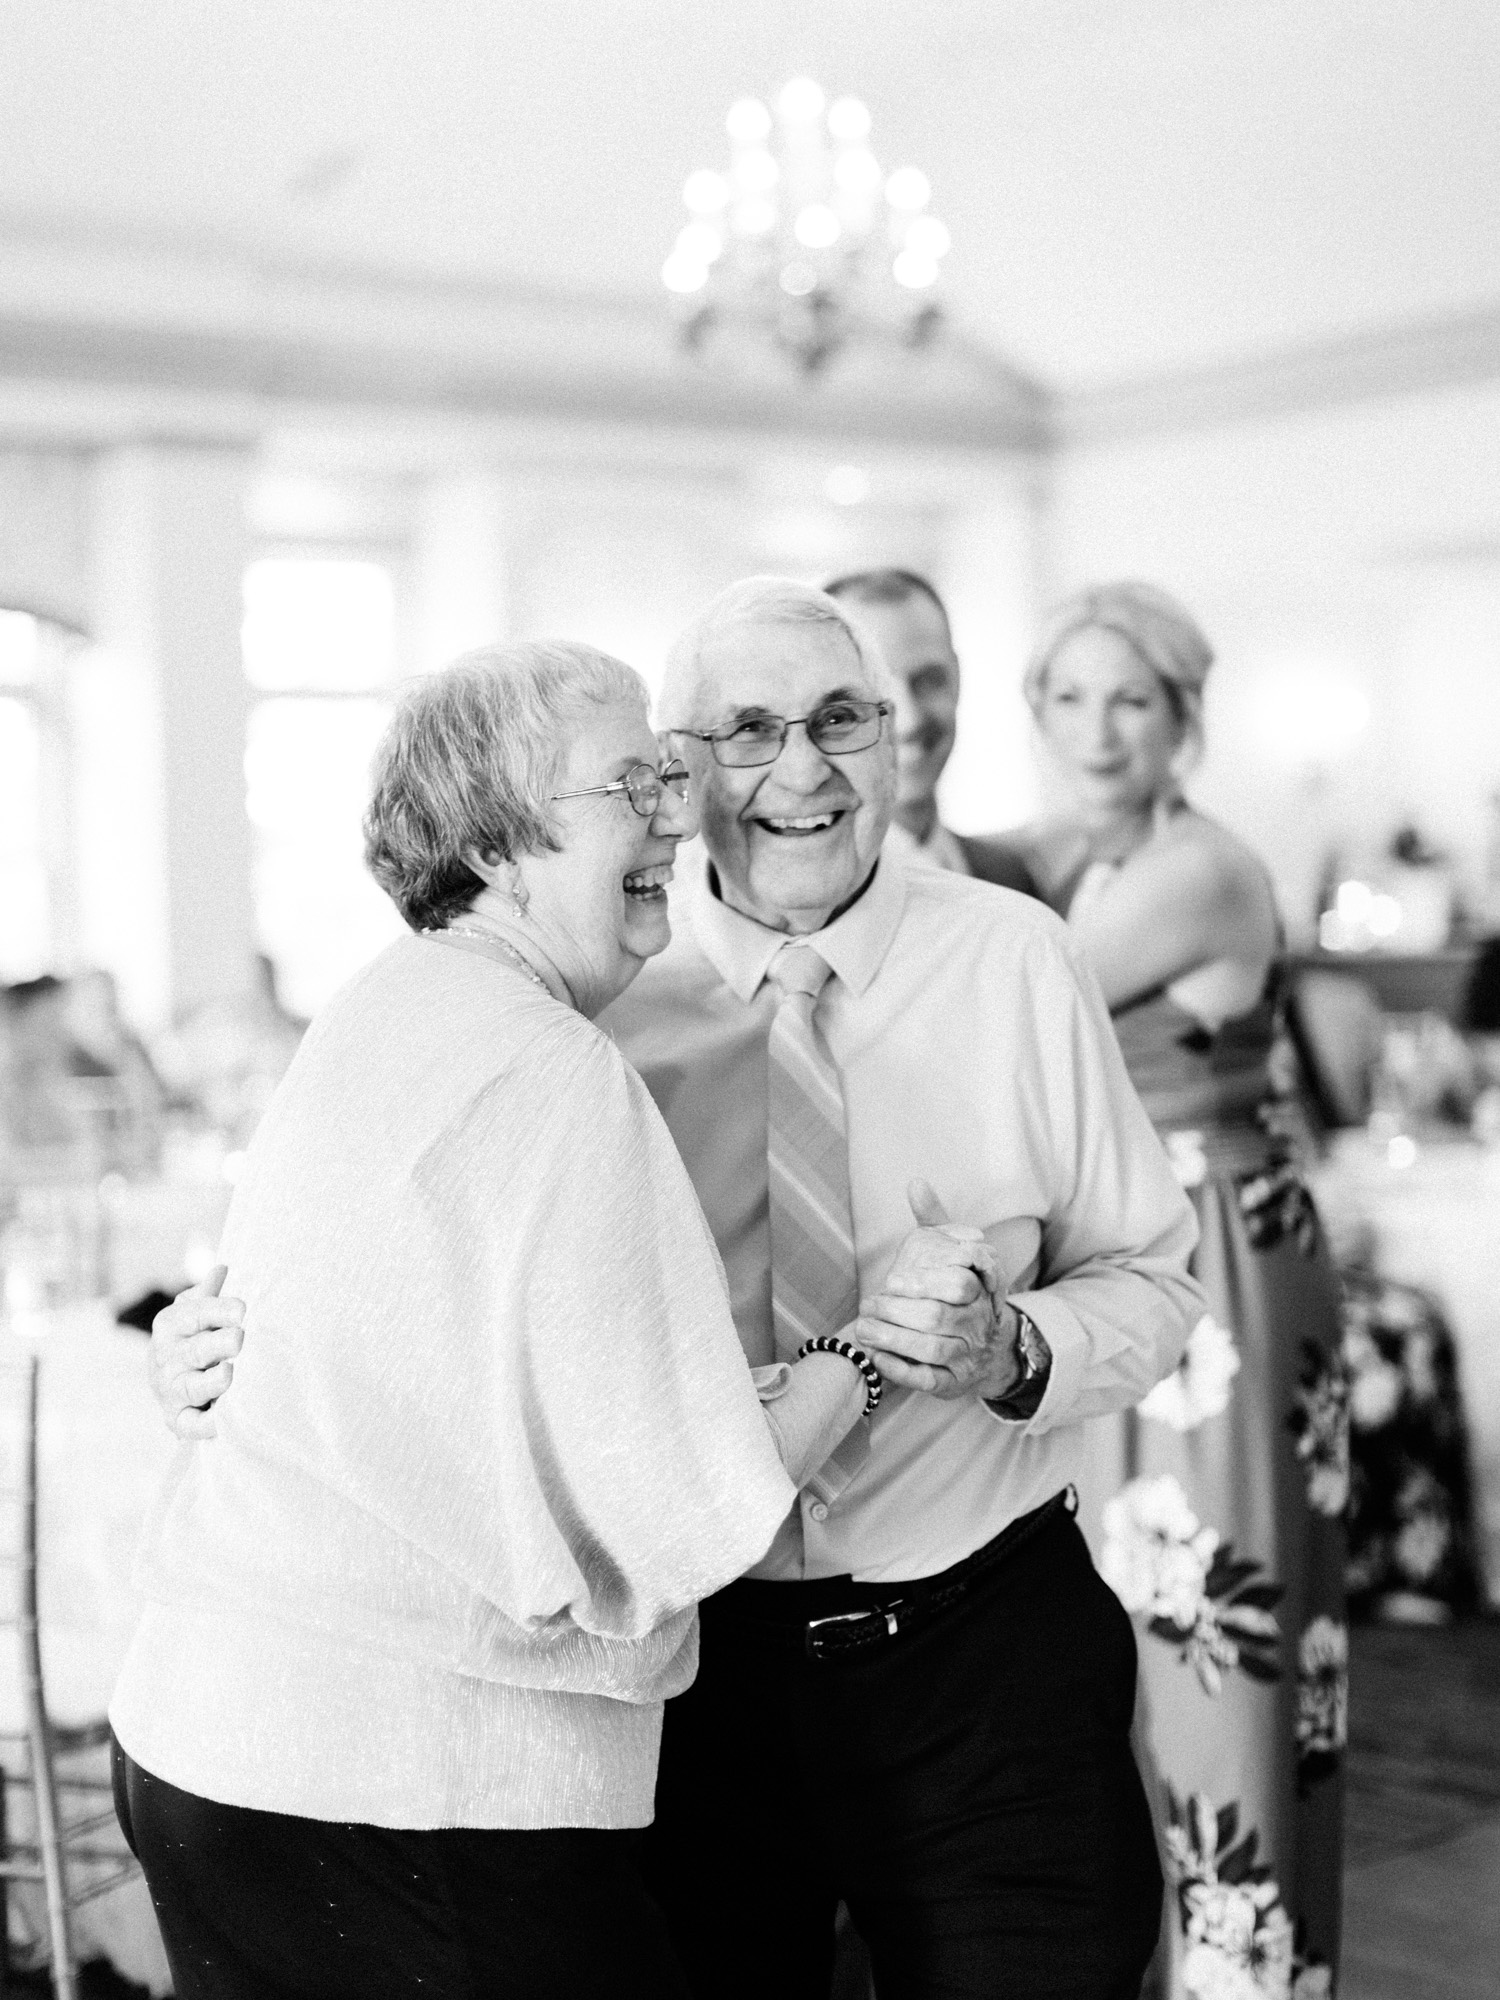 An elderly grandma and grandpa laugh while dancing together at a wedding at The Polo Fields in Michigan